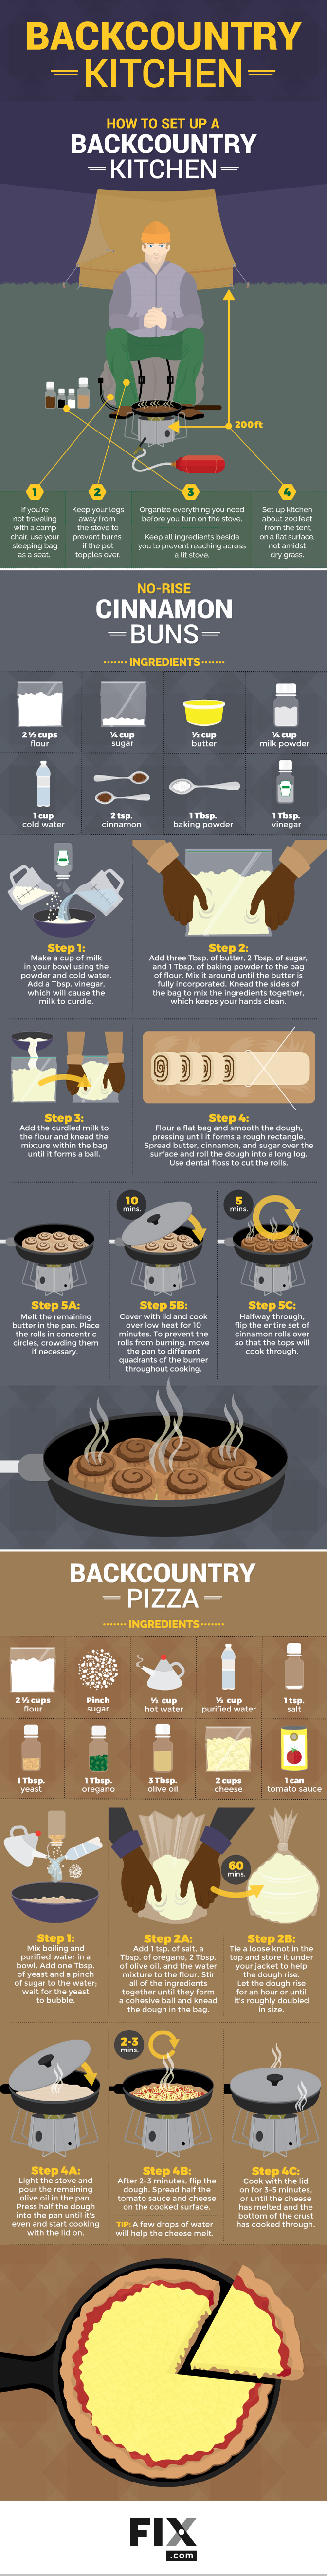 cooking infographic